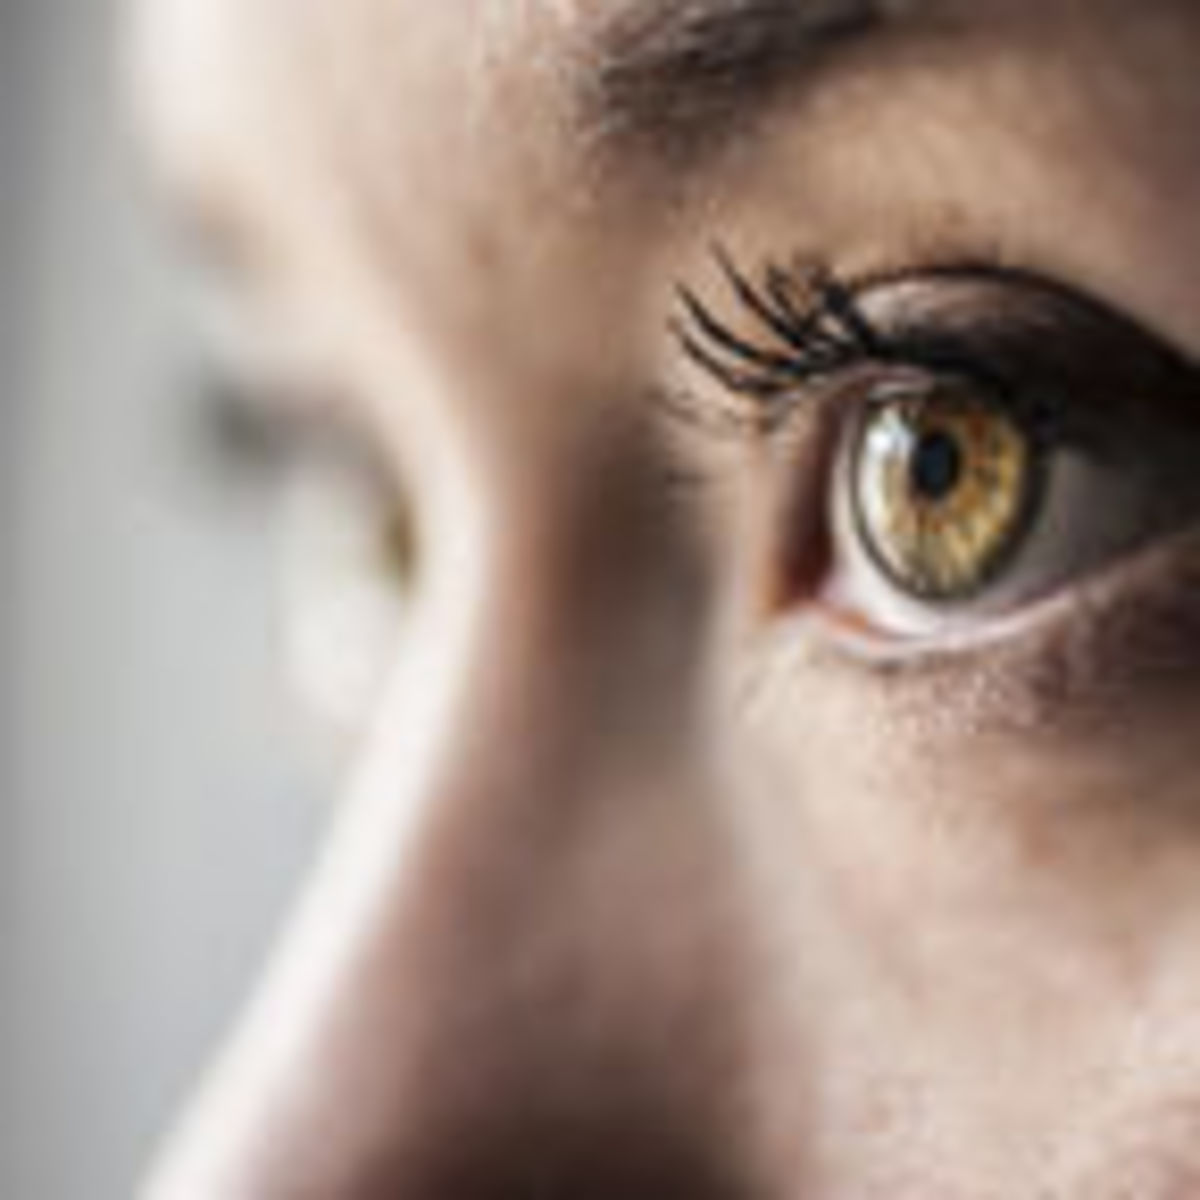 How You Know Eyes Are Watching You | Psychology Today